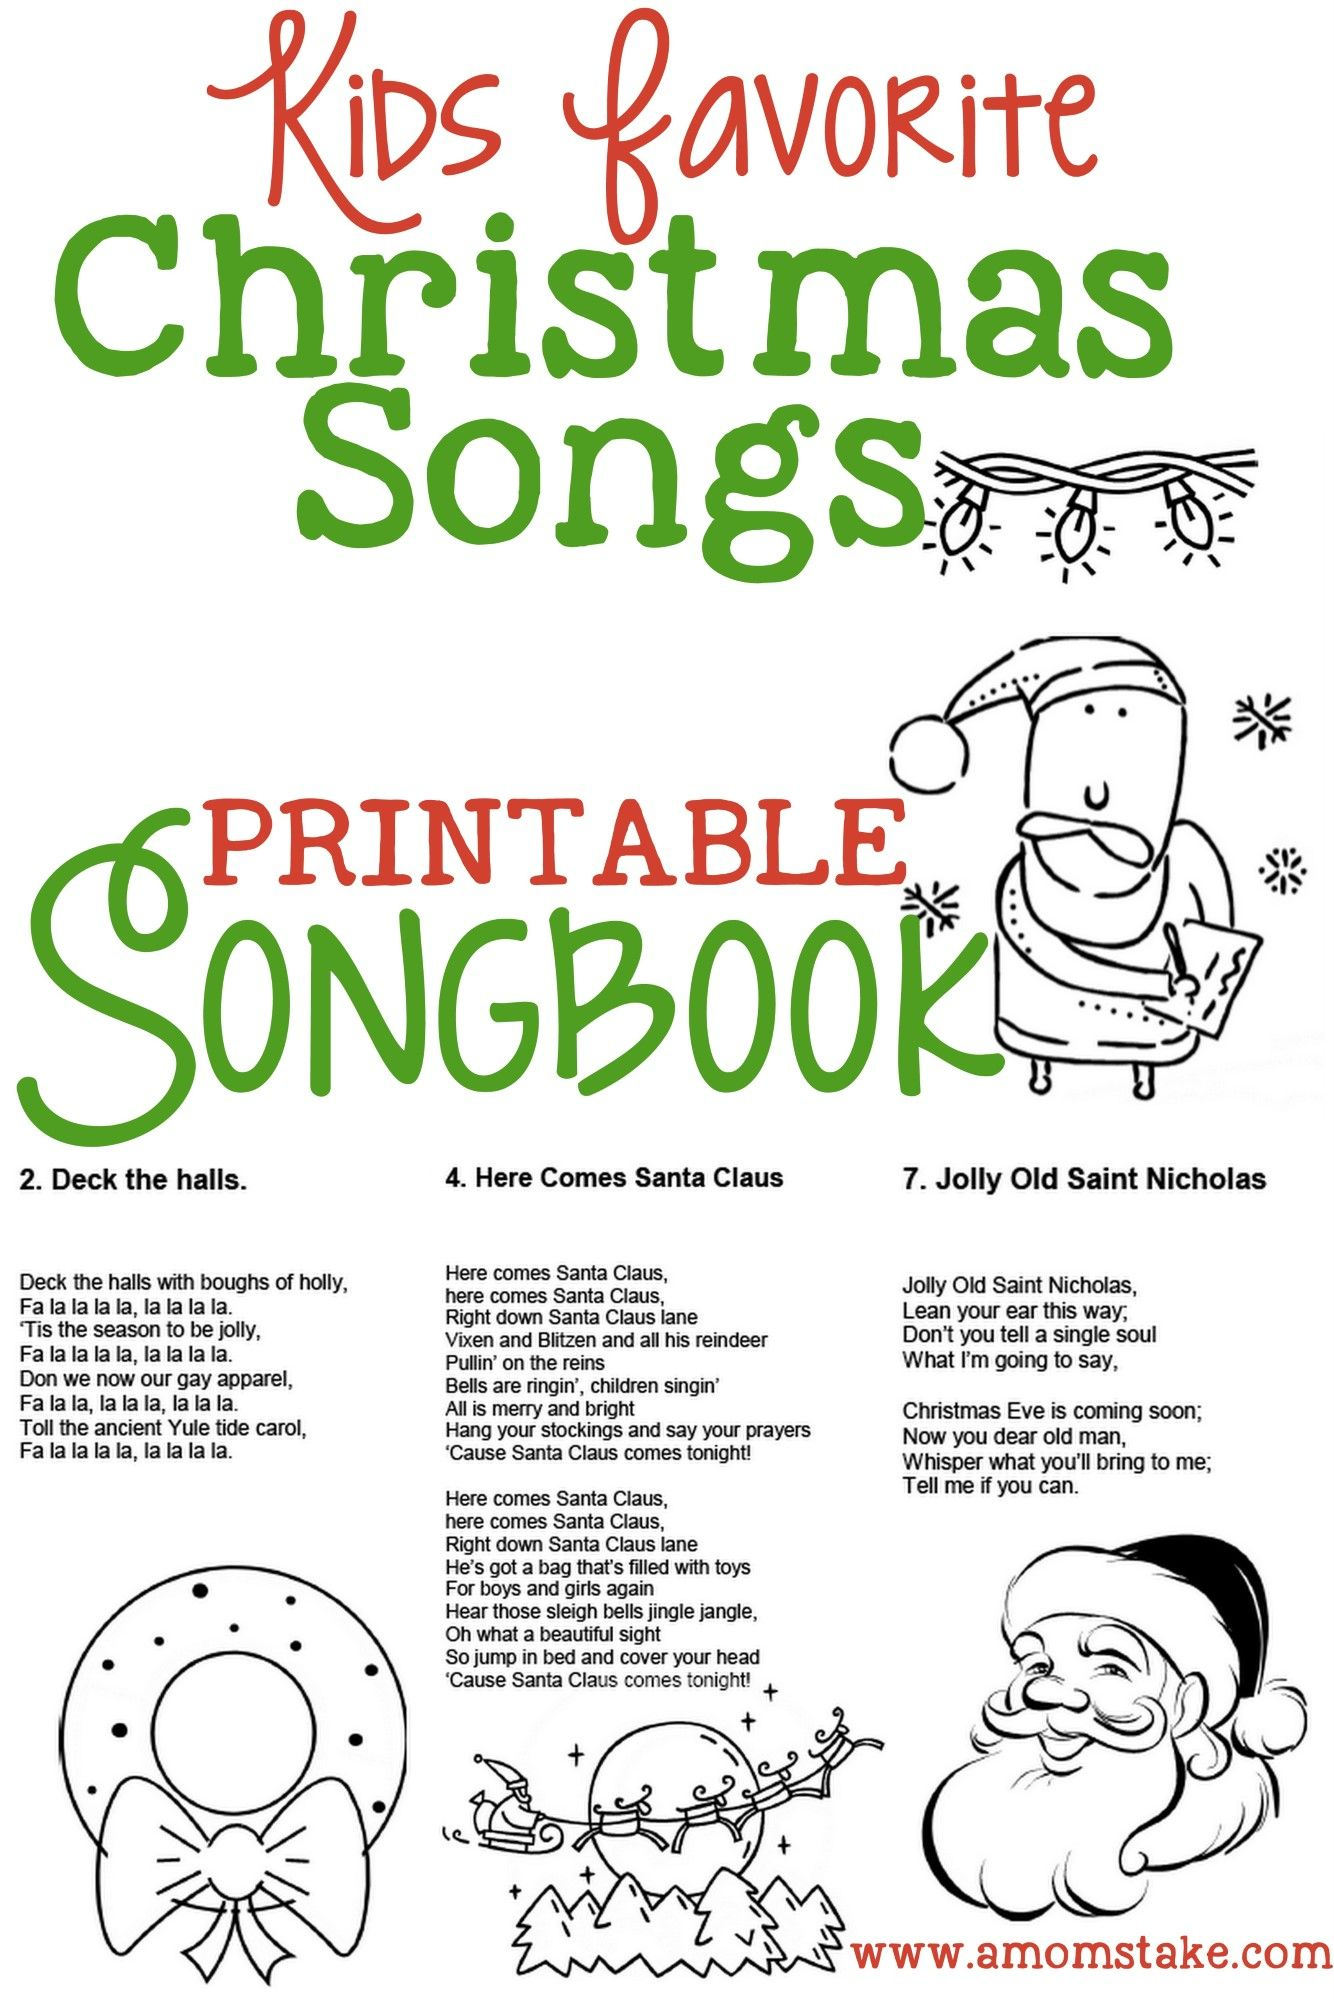 Christmas Songs For Kids – Free Printable Songbook! A Coloring Book - Christmas Song Lyrics Game Free Printable